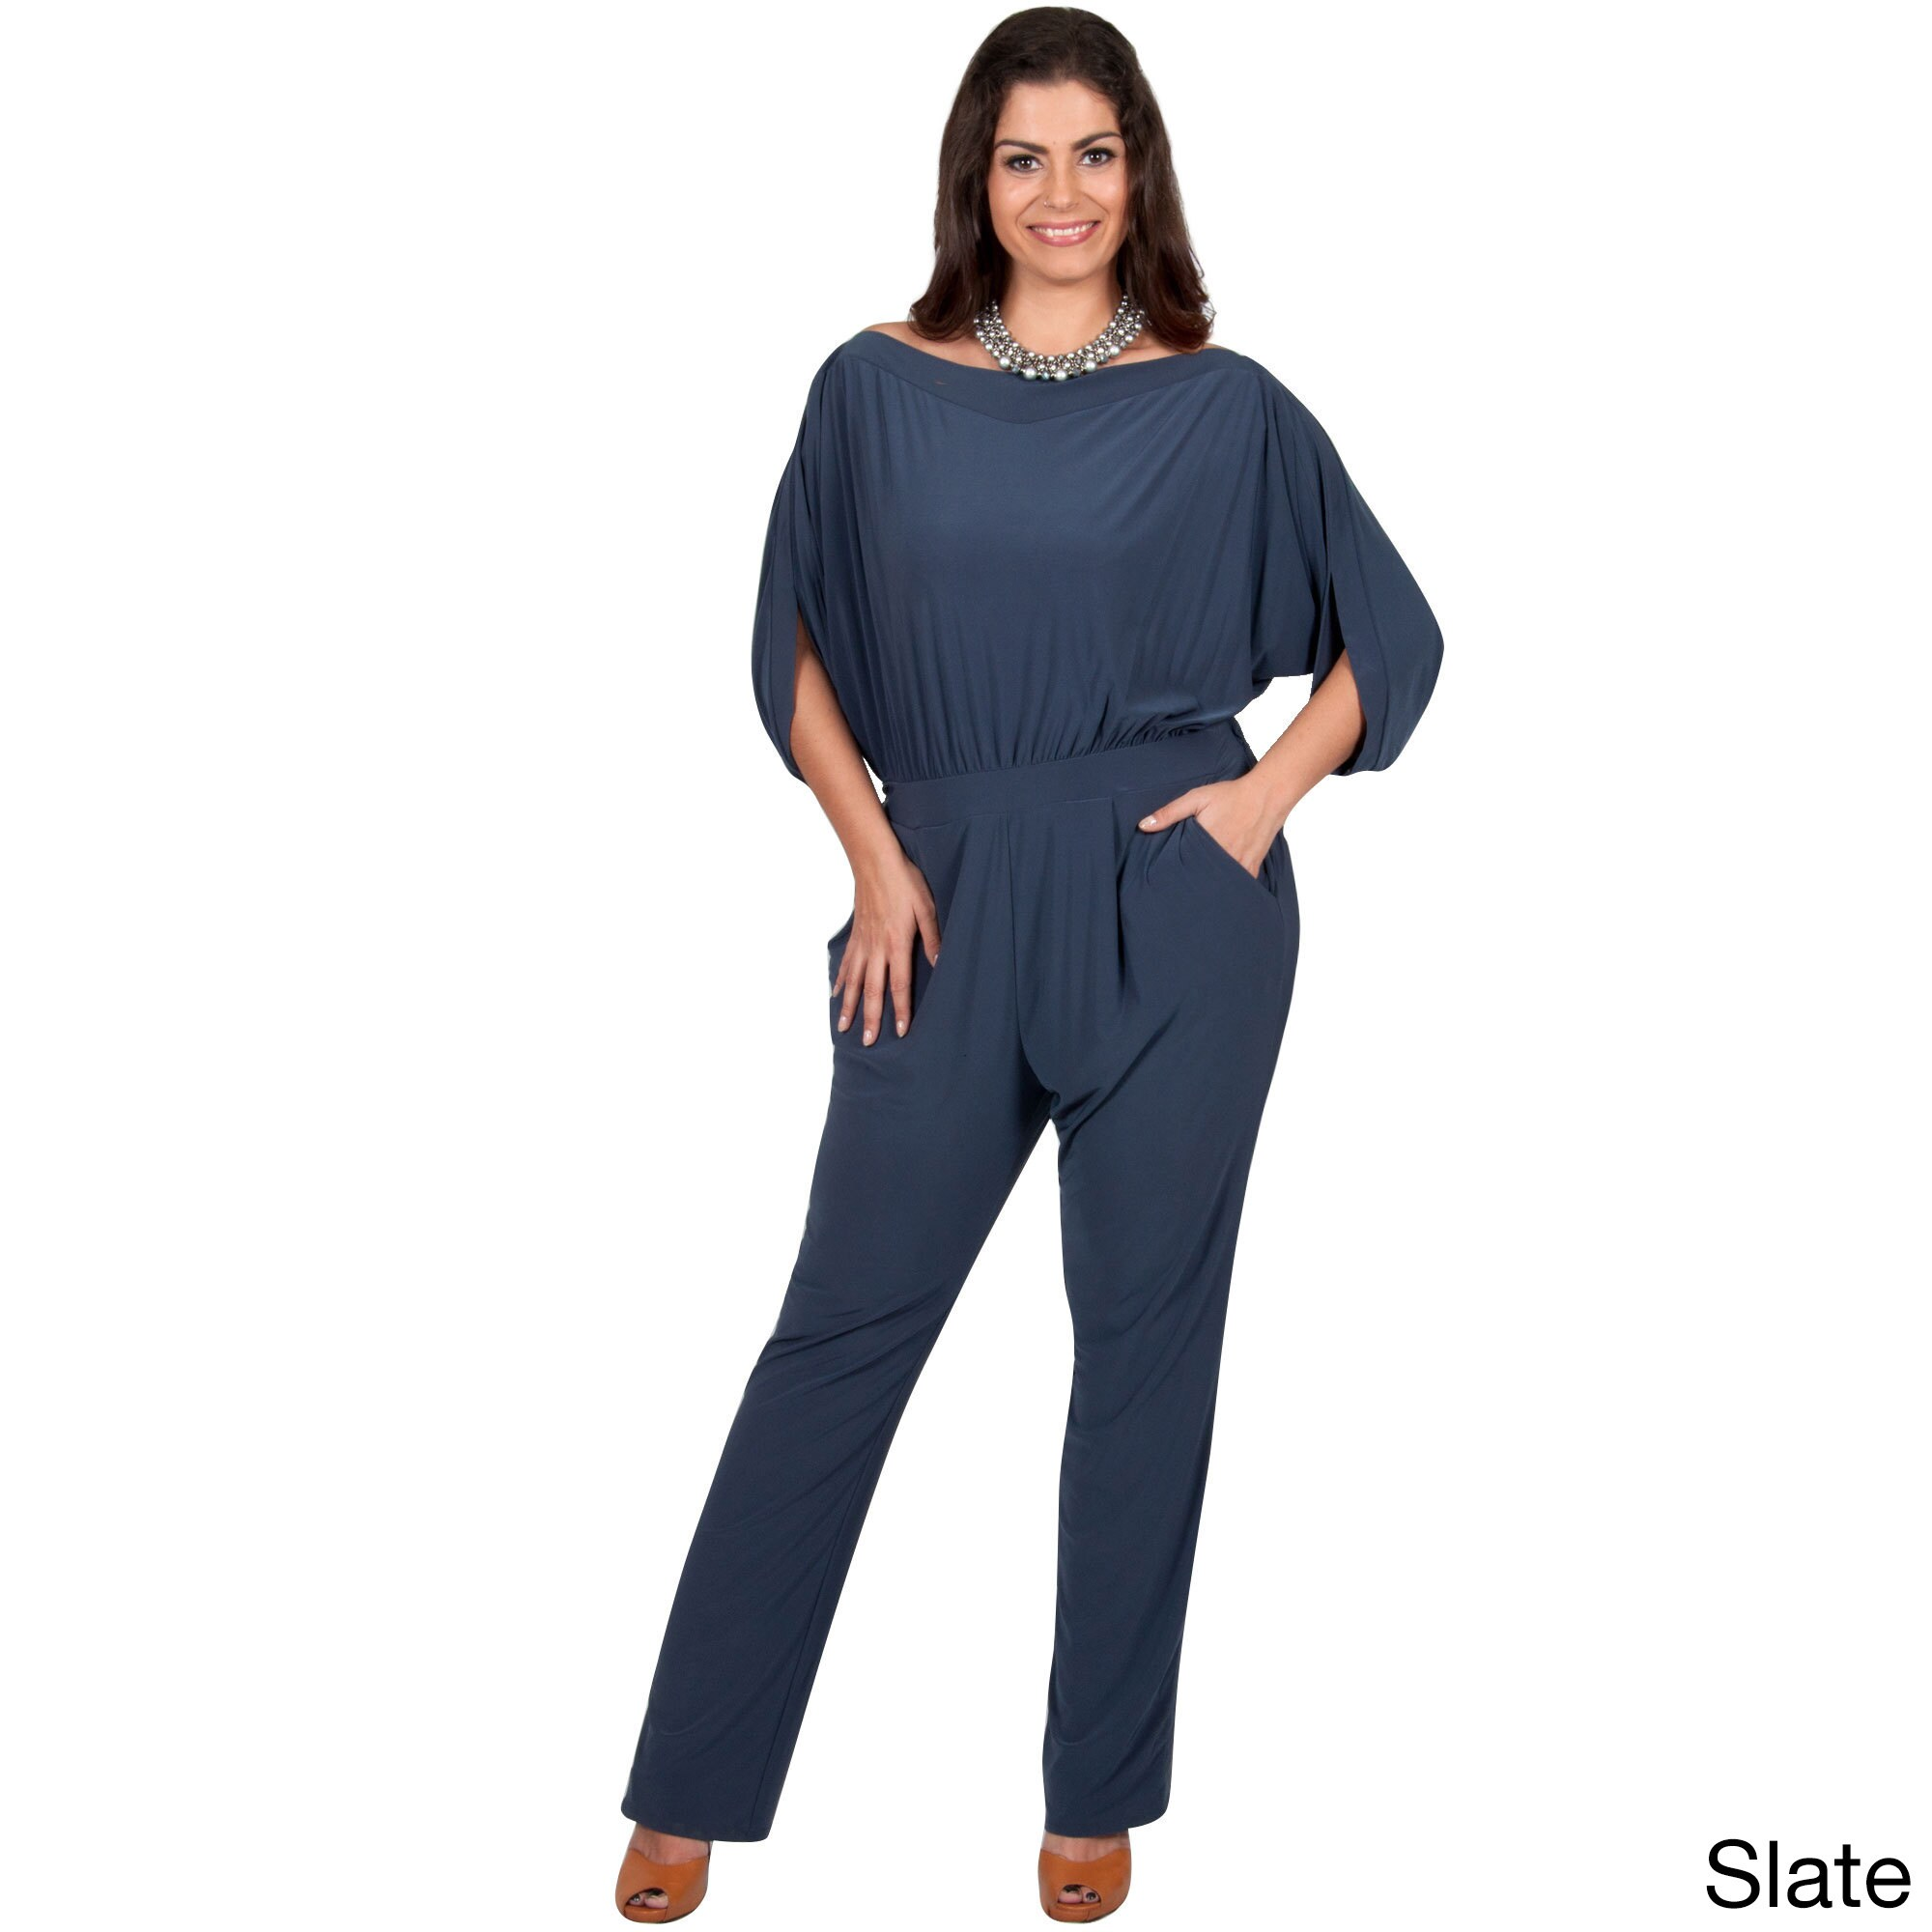 882e5ba8e40c Shop KOH KOH Women s Plus Size Batwing Sleeves Round Neck Cocktail Jumpsuit  - Free Shipping Today - Overstock - 11333885